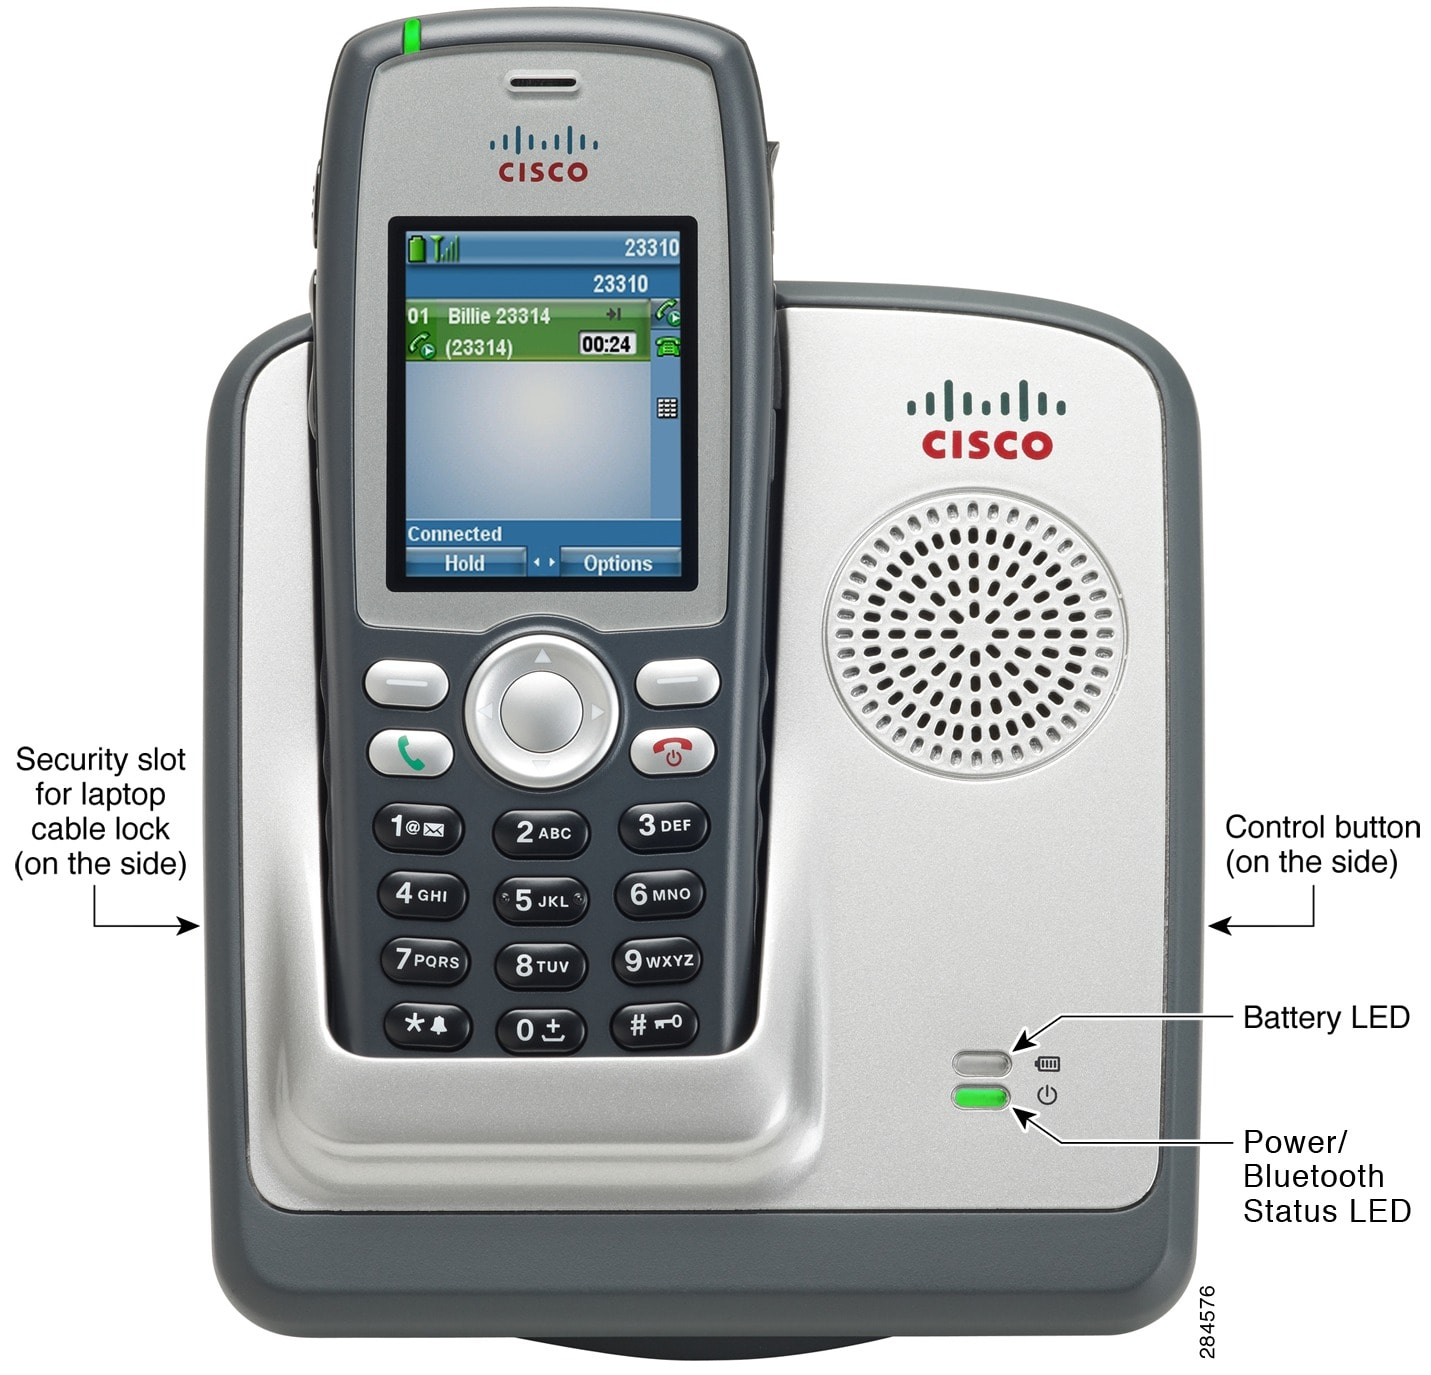 Cisco unified wireless ip phone 7925g series deployment guide.